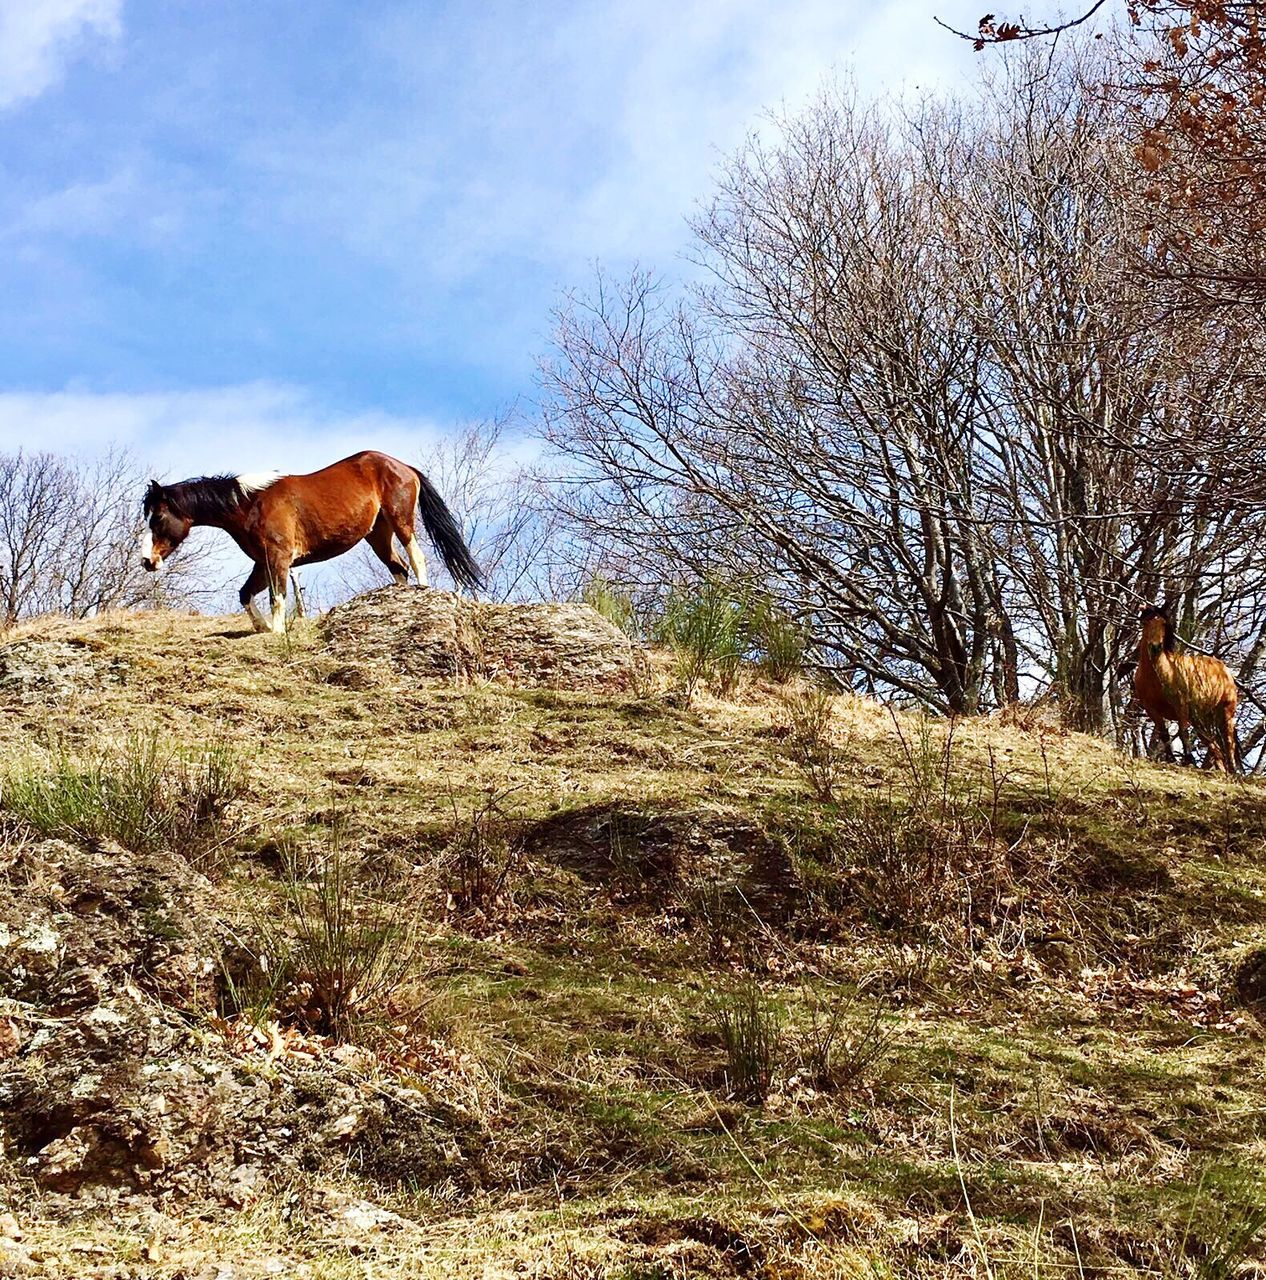 domestic animals, animal themes, horse, one animal, mammal, grass, field, sky, nature, bare tree, tree, day, outdoors, livestock, landscape, no people, beauty in nature